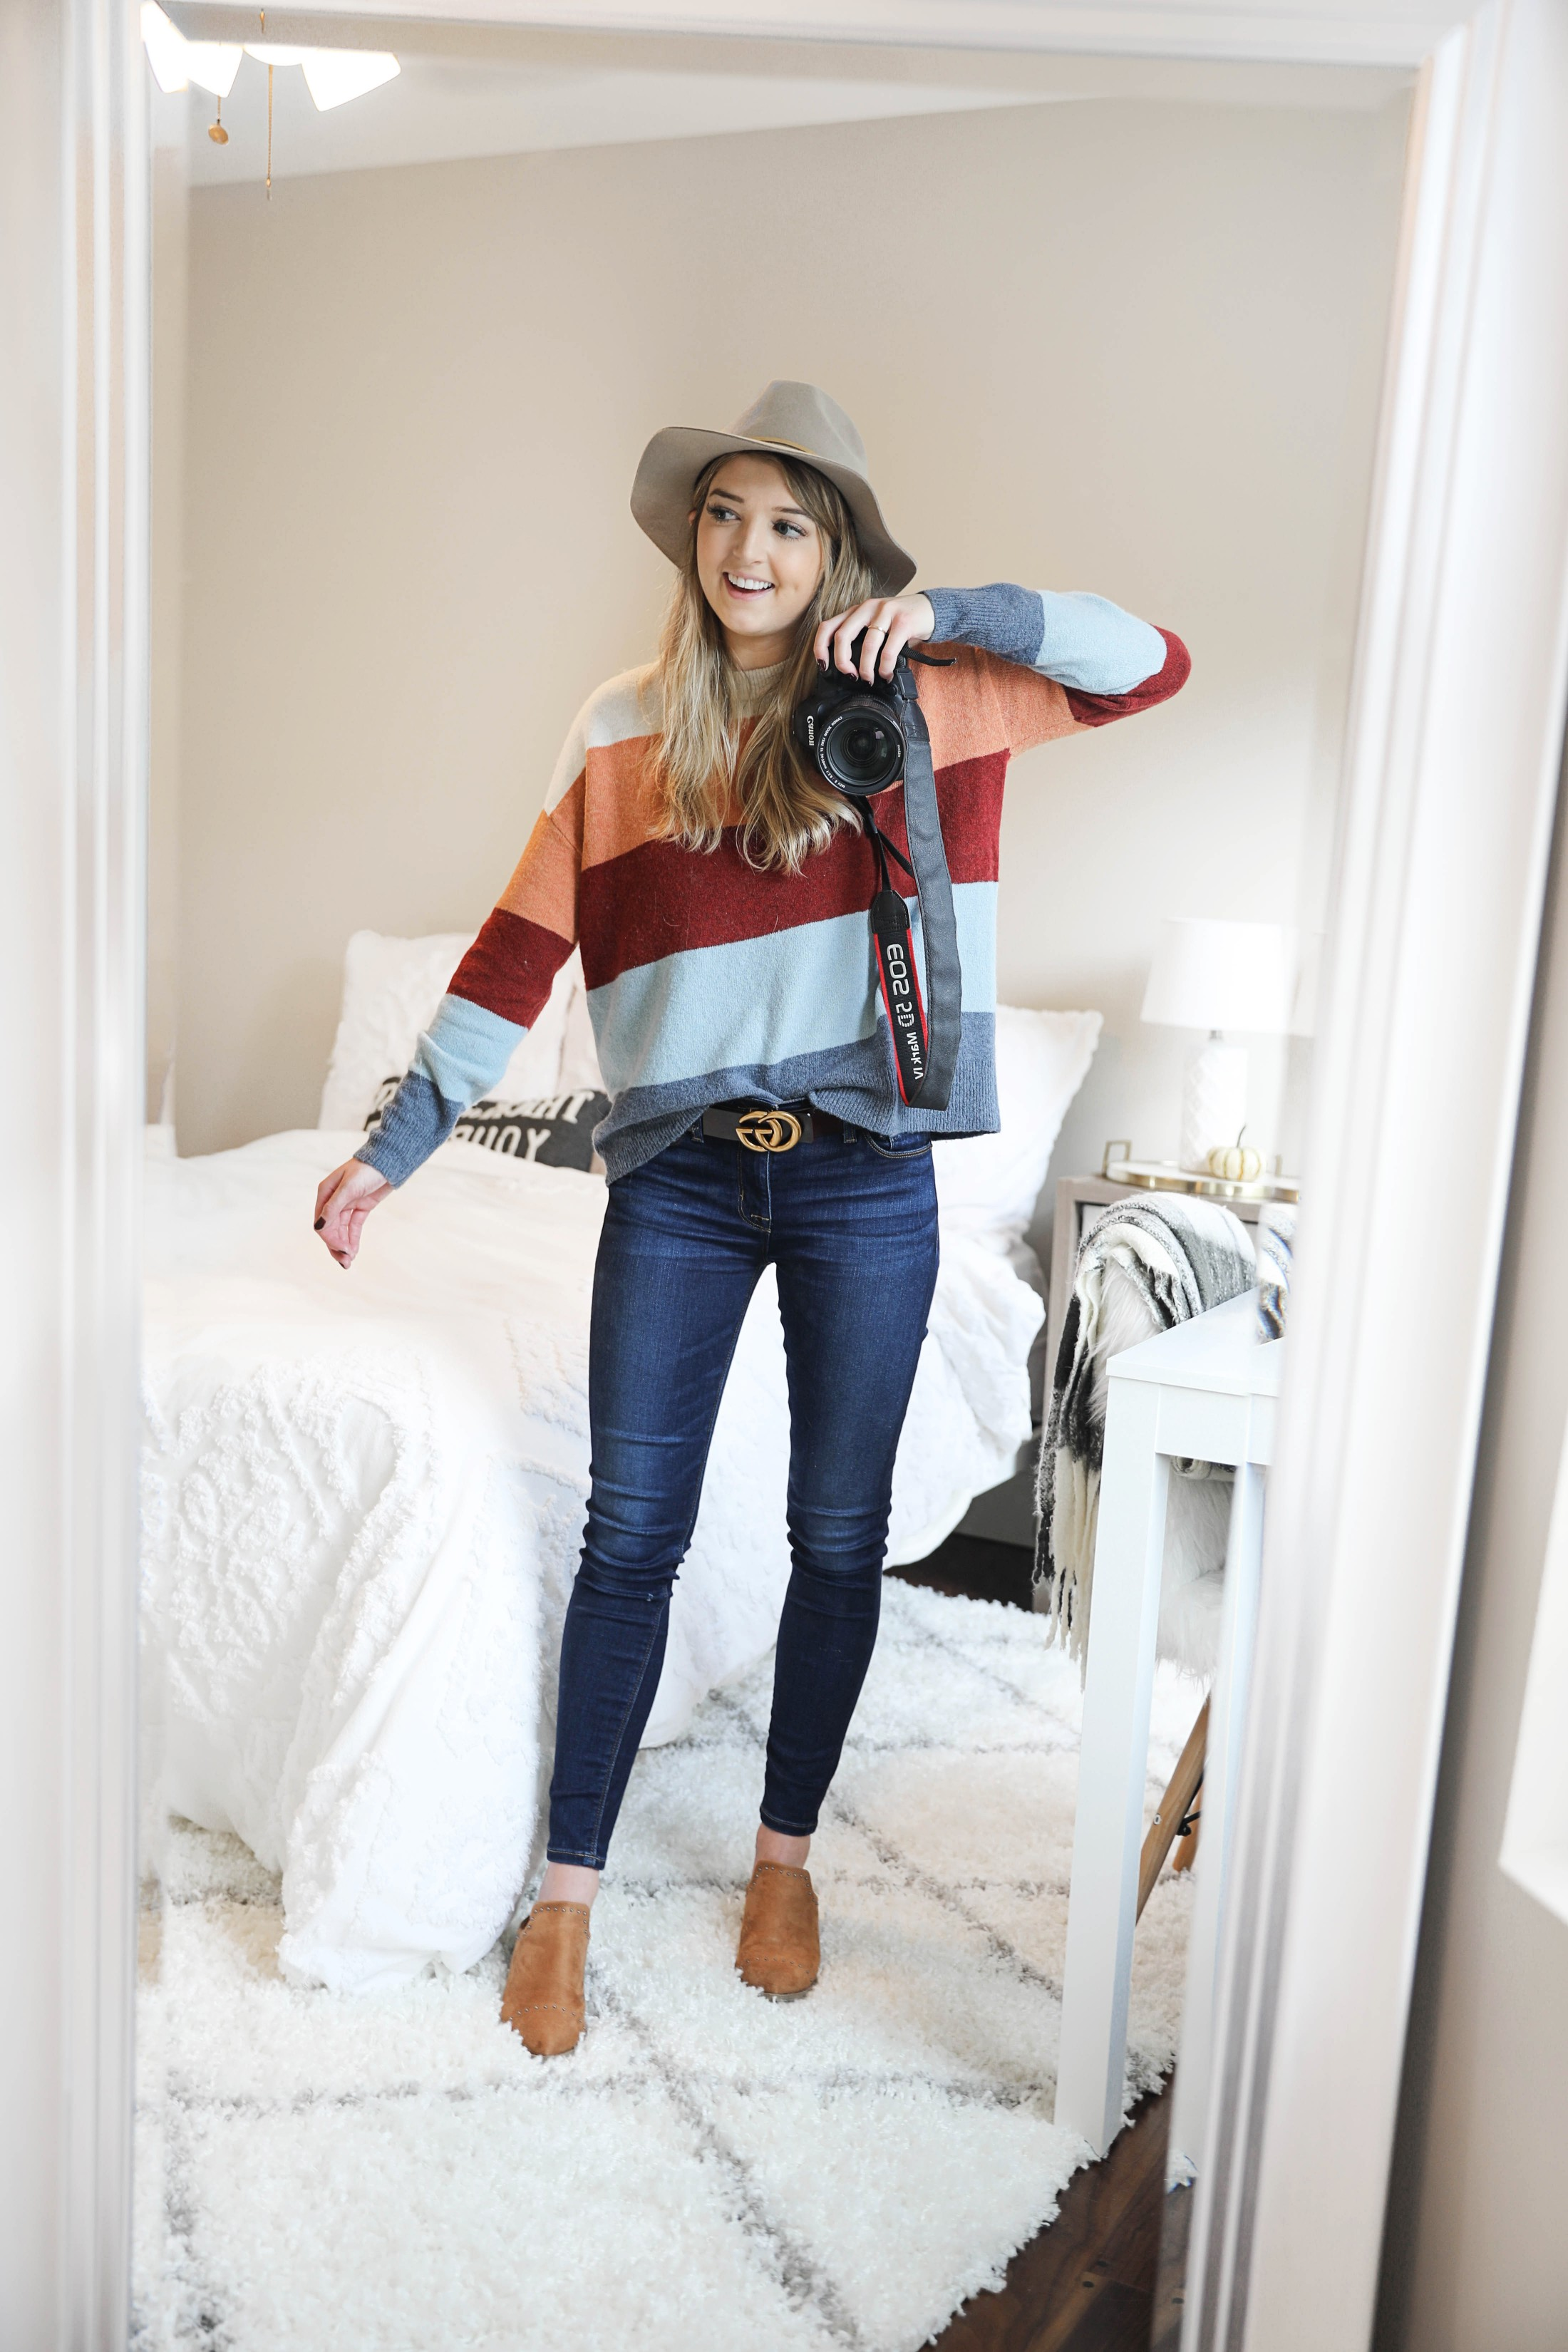 Fall room decor ideas! Inspiration for white and bright room! Check out this fashion blogger's room tour! I love decorating my house for autumn! Details on fashion and lifestyle blog daily dose of charm by lauren lindmark